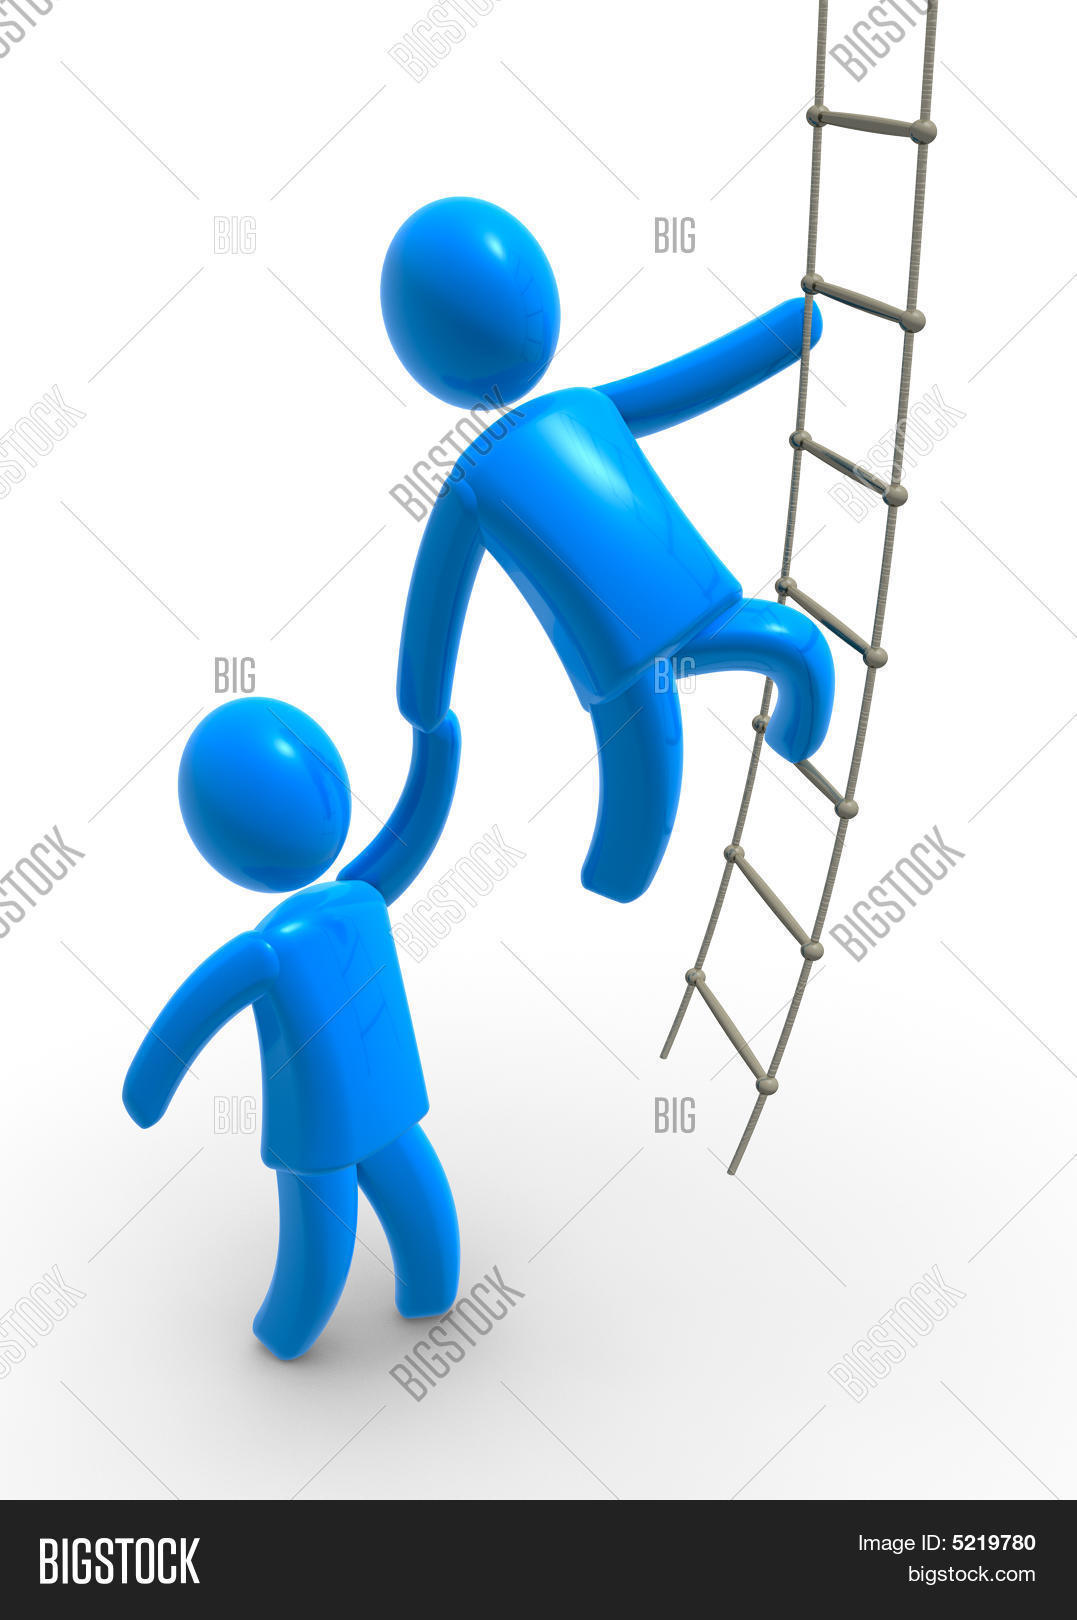 achievement,assistance,blue,business,businessmen,care,choose,colleague,connect,contact,cooperate,danger,dangerous,dependency,dimensional,guidance,hand,help,helping,helping hand,helping hands,hold,holding,human,individual,isolated,join,joining,ladder,leadership,lift,men,metaphor,moving,need,people,people helping people,person,picking,problems,red,render,rescue,rope,save,savior,service,shape,situation,solution,support,survival,symbol,symbolic,team,teamwork,three,touching,vertical,white